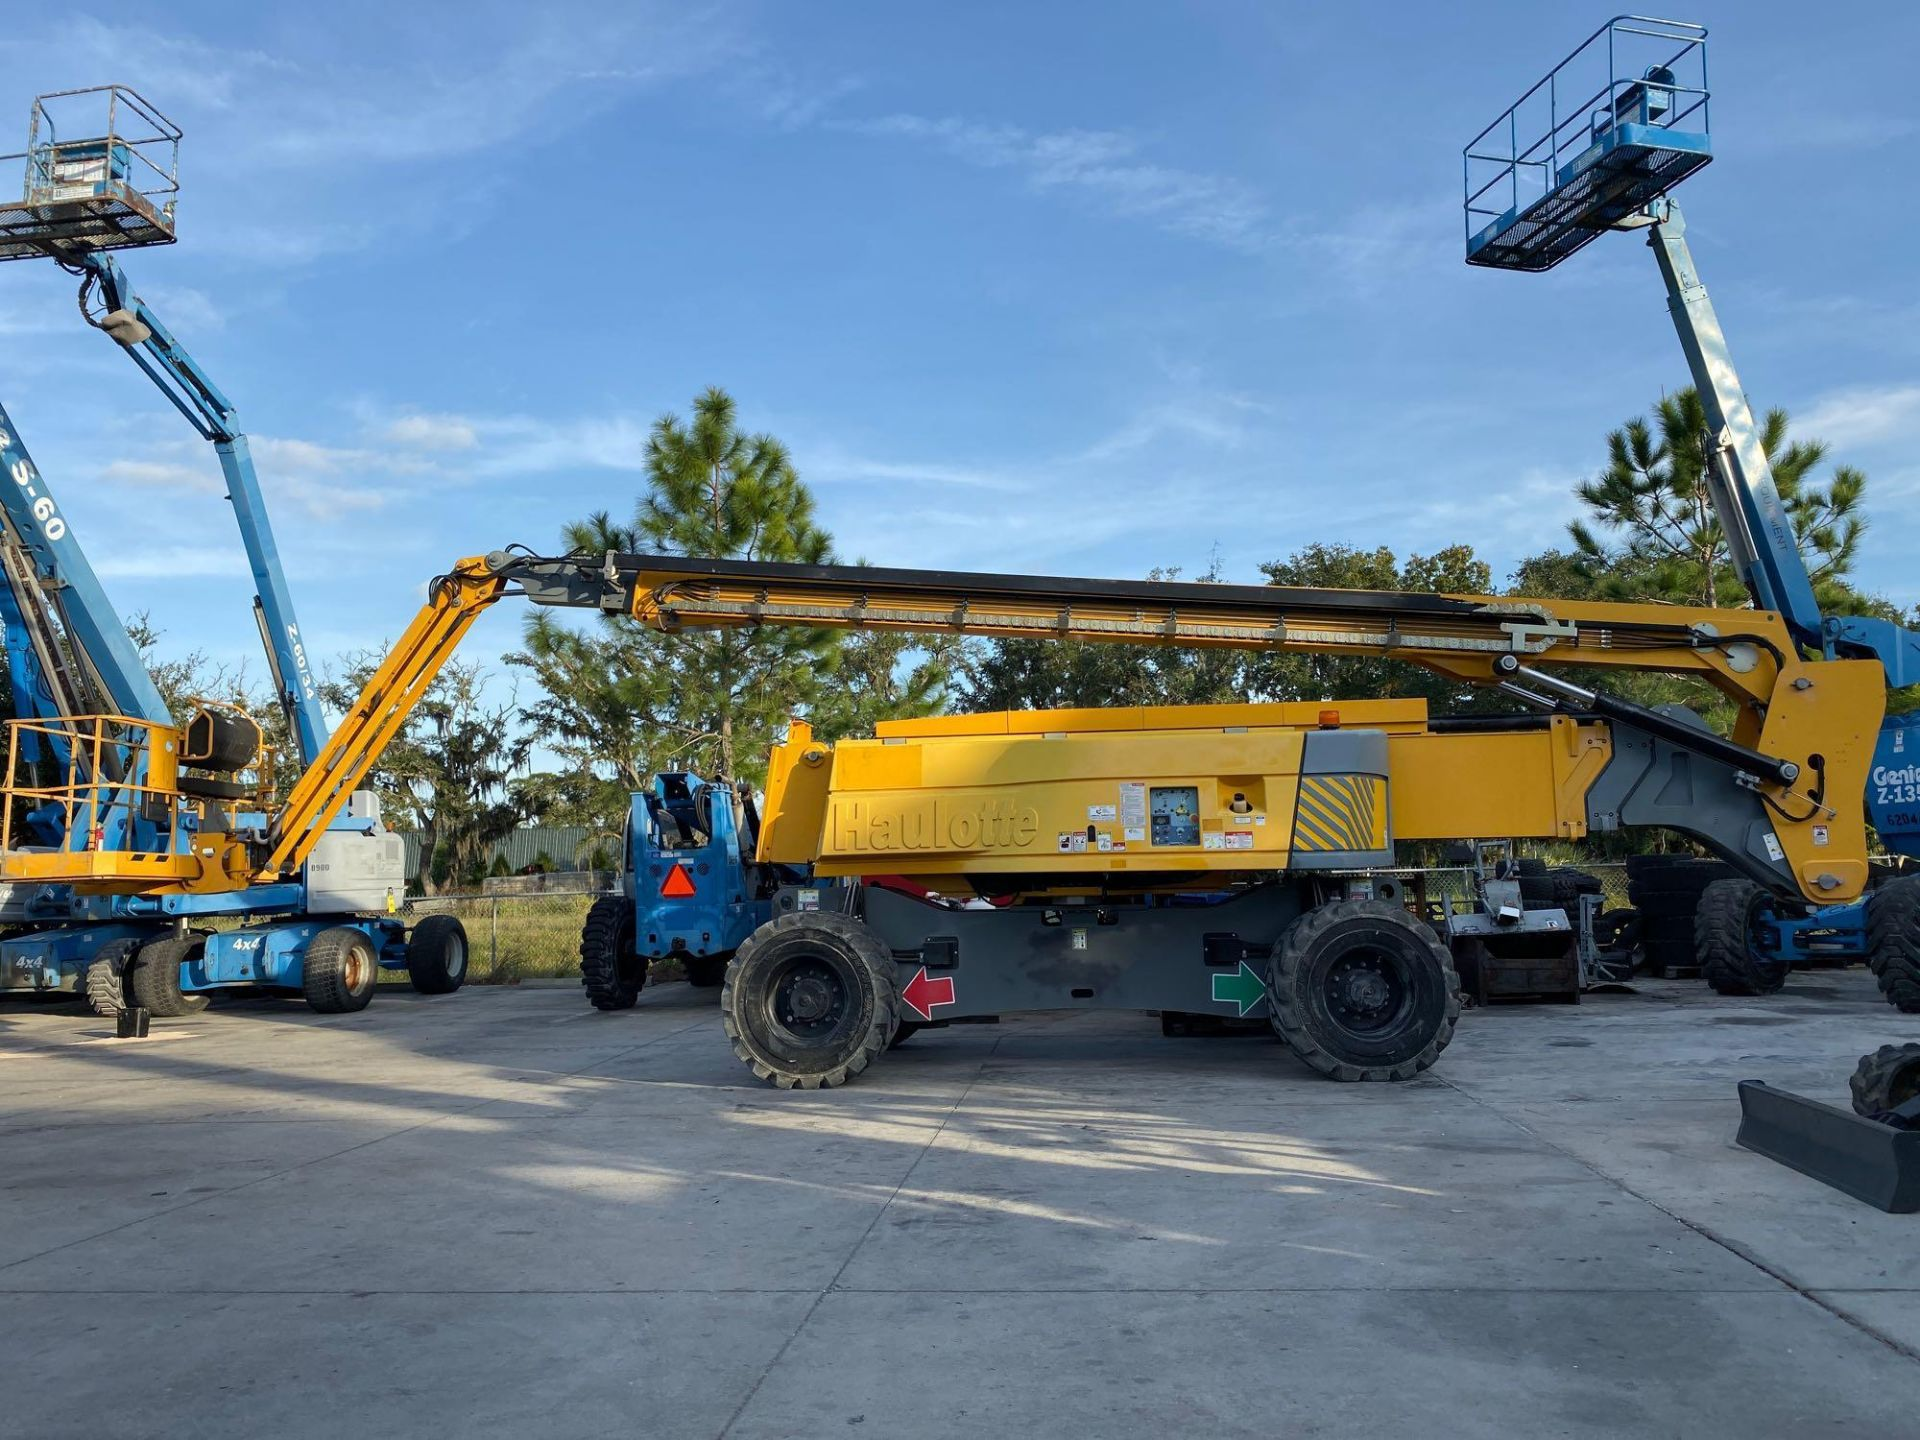 Lot 67A - 2015 HAULOTTE HA130 RTJ PRO ARTICULATING DIESEL BOOM LIFT, 130' PLATFORM HEIGHT, 4x4